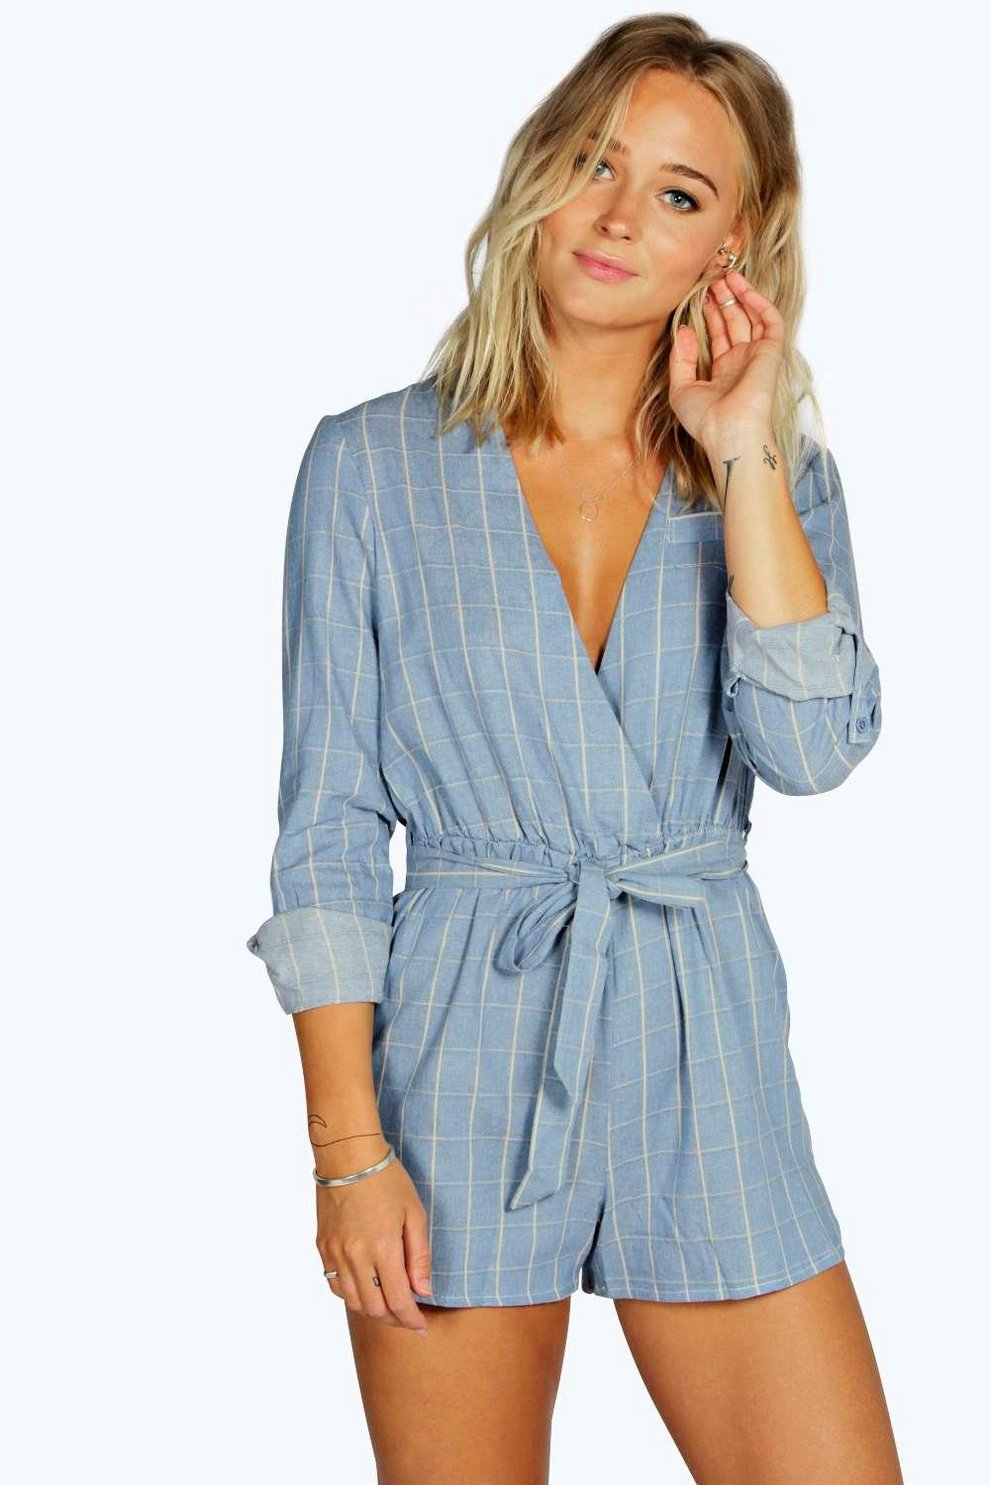 Visit New Sale Online Boohoo Textured Check Draped Playsuit Cheap Lowest Price Enjoy Sale Online Best Place To Buy Buy Cheap Footlocker Finishline YxoBA4E3jH